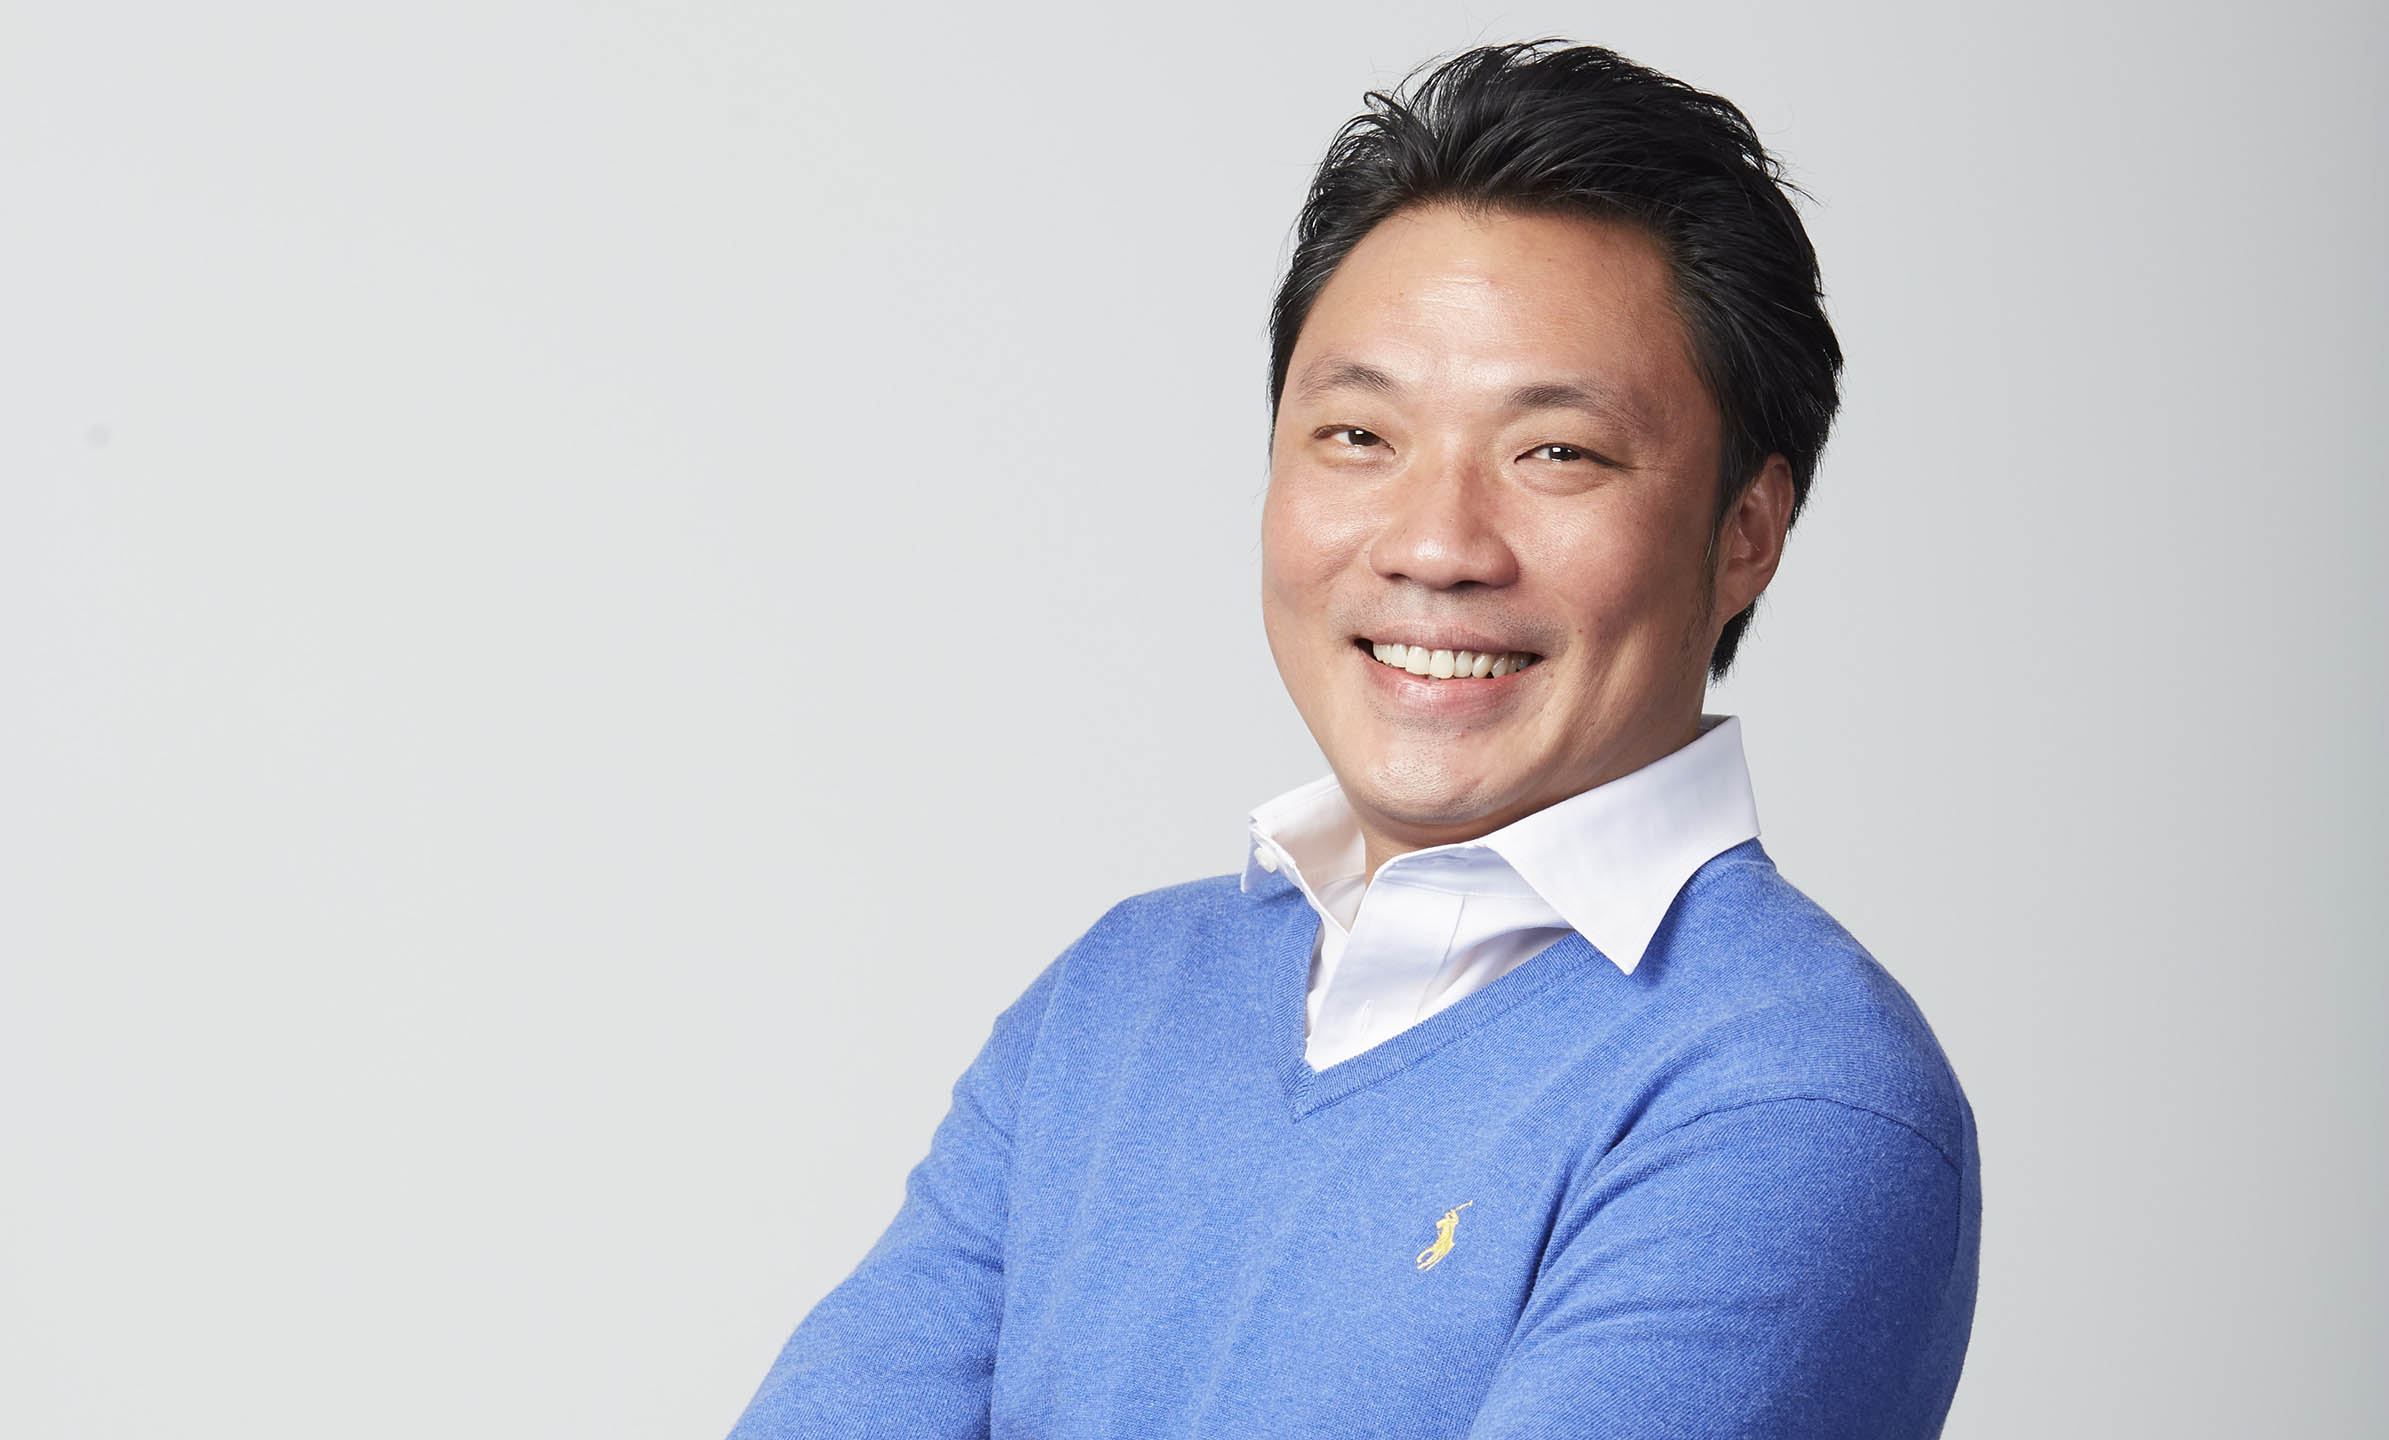 VMLY&R elevates Kenni Loh to chief executive officer across Malaysia and Indonesia offices